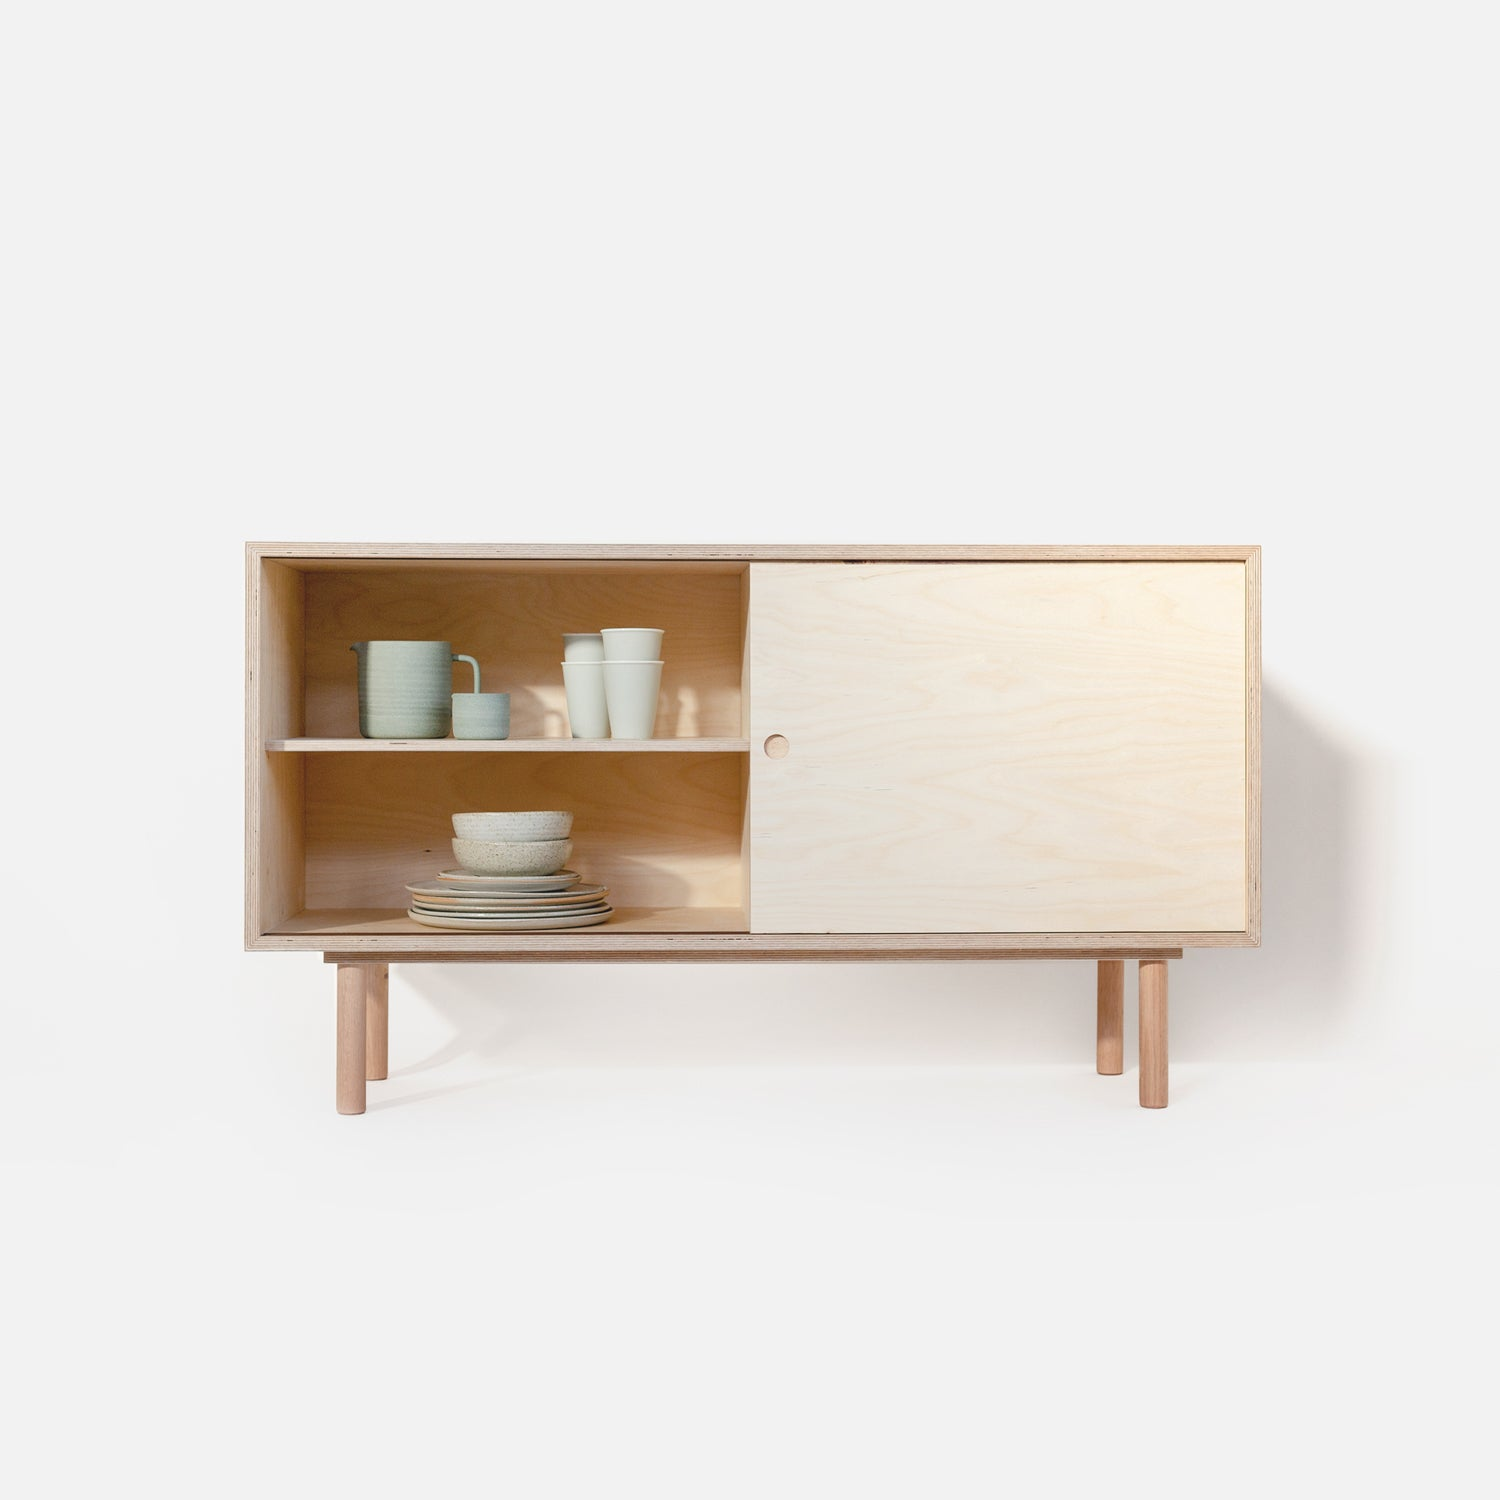 Modern Bedroom Storage and Minimalist furniture for a simple 2019